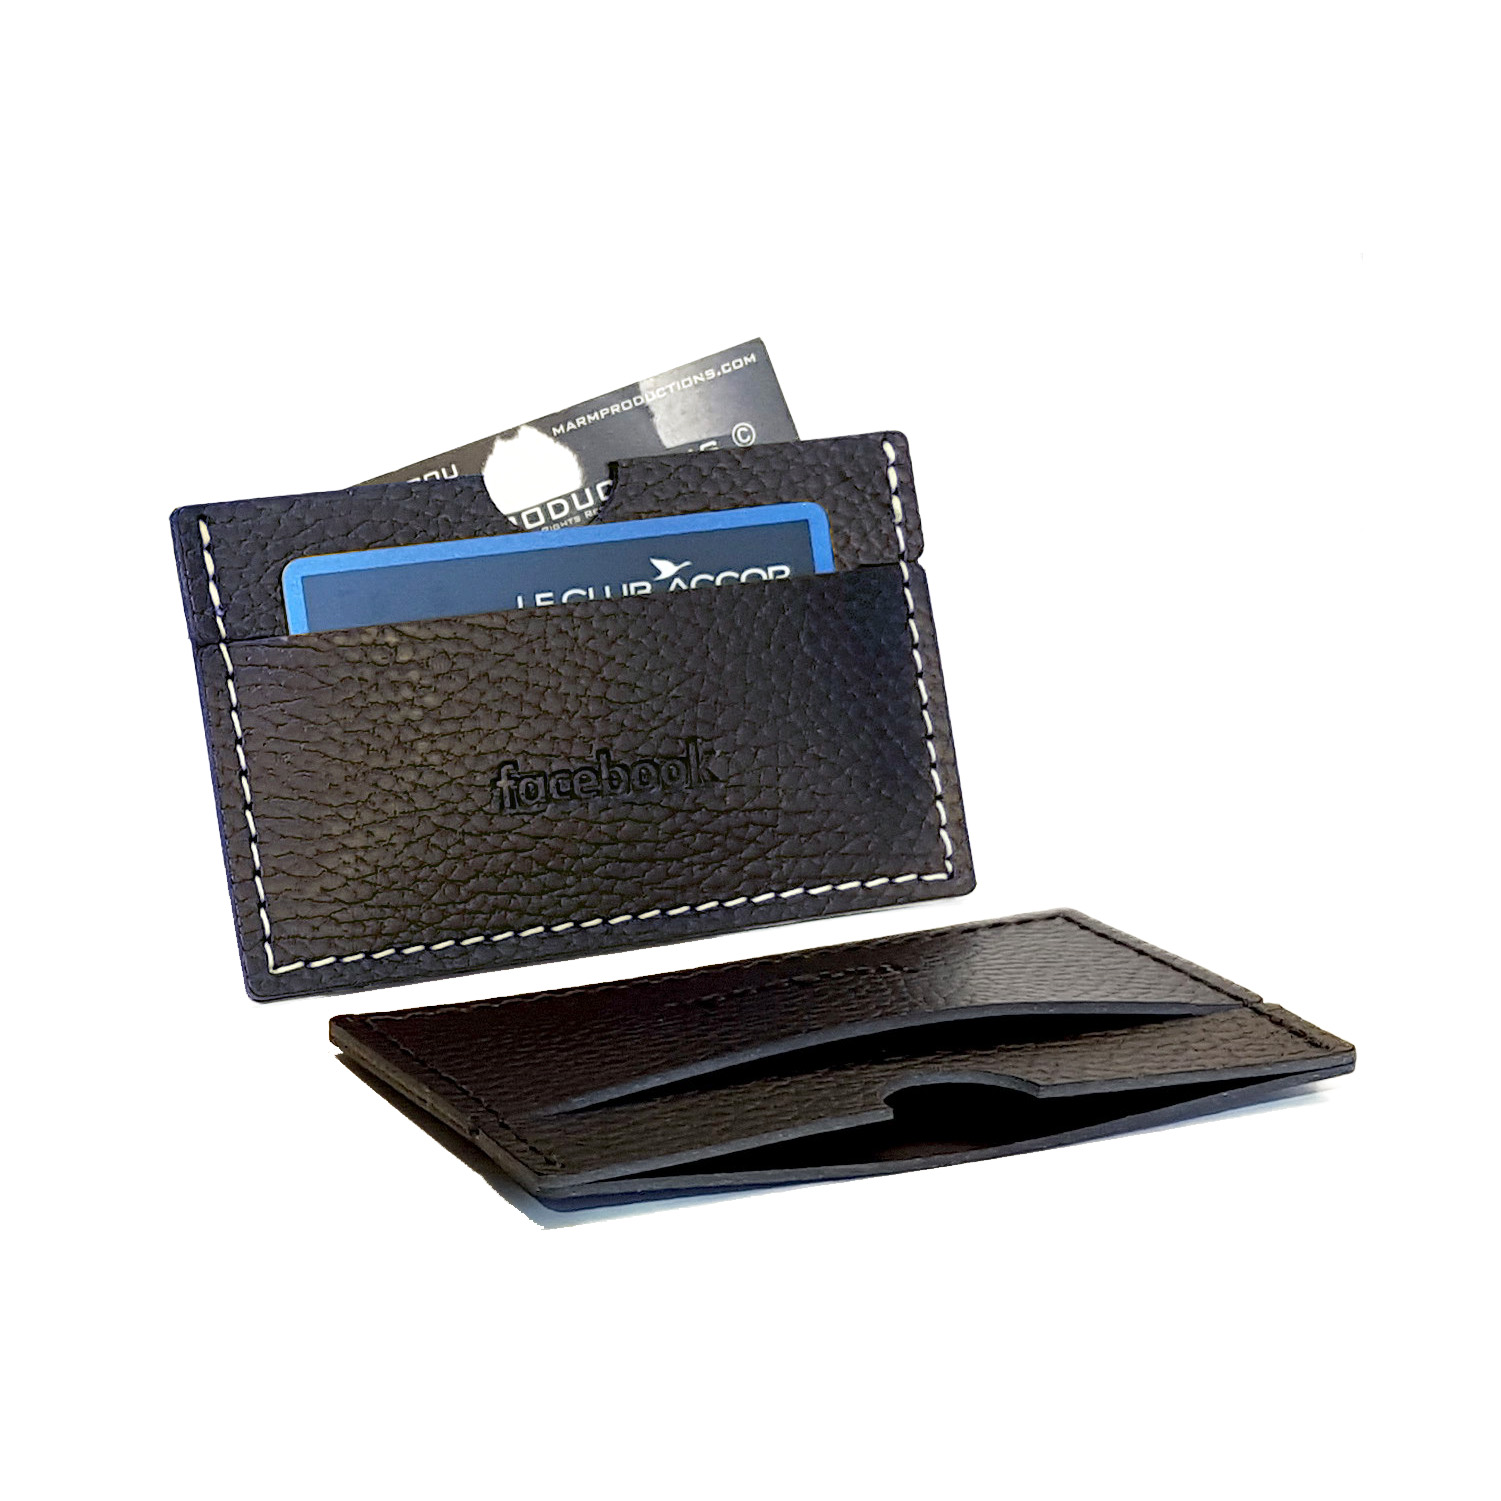 Business Card Carrier | Branded Chameleon